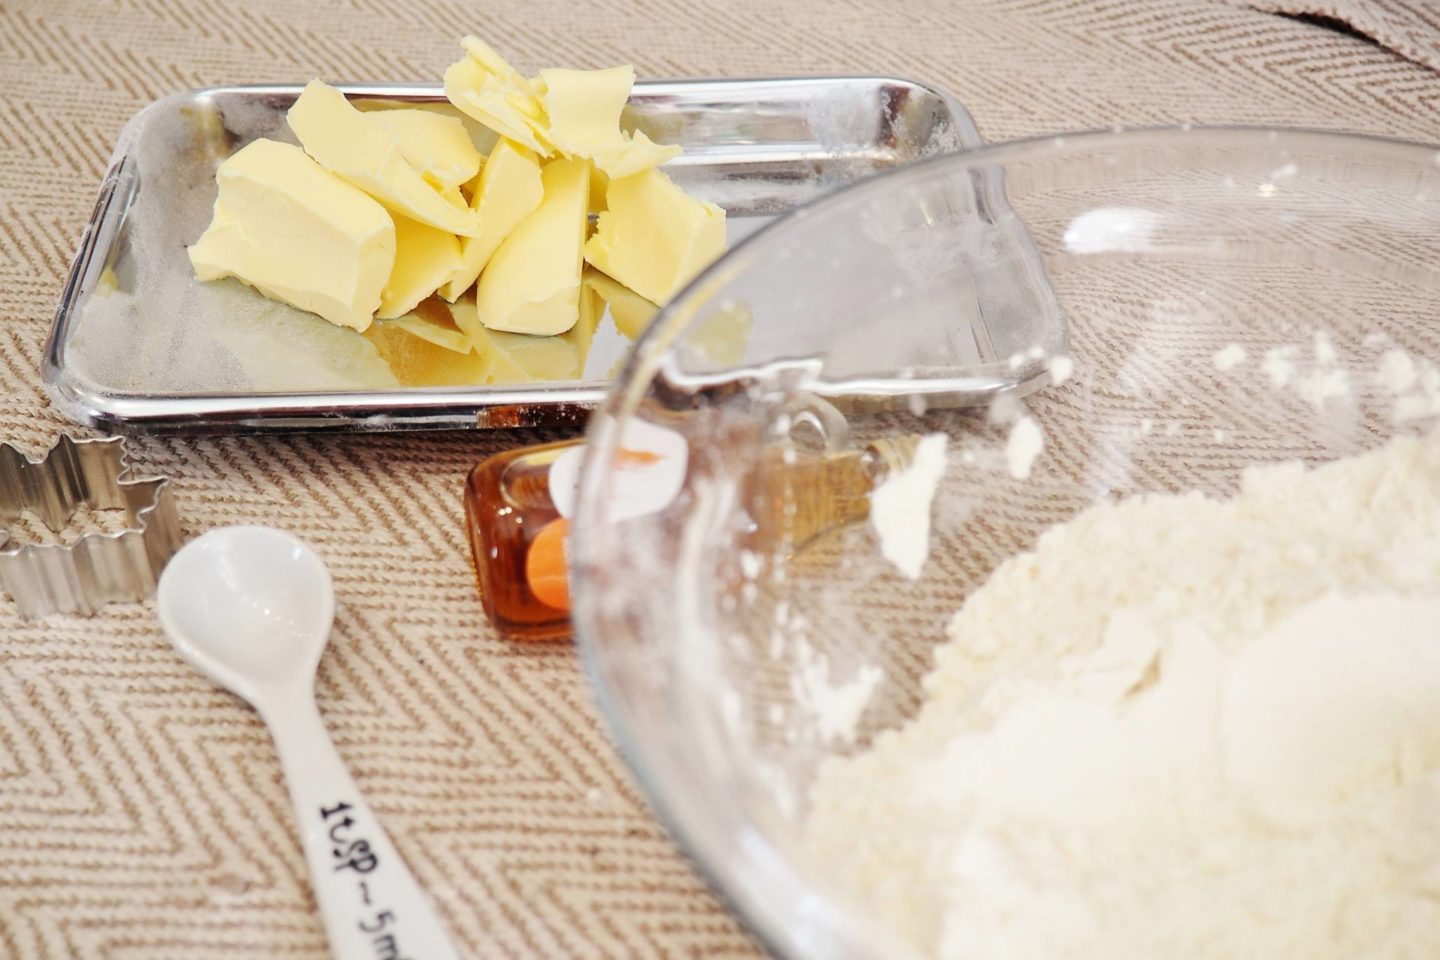 butter, pyrex bowl and spoon